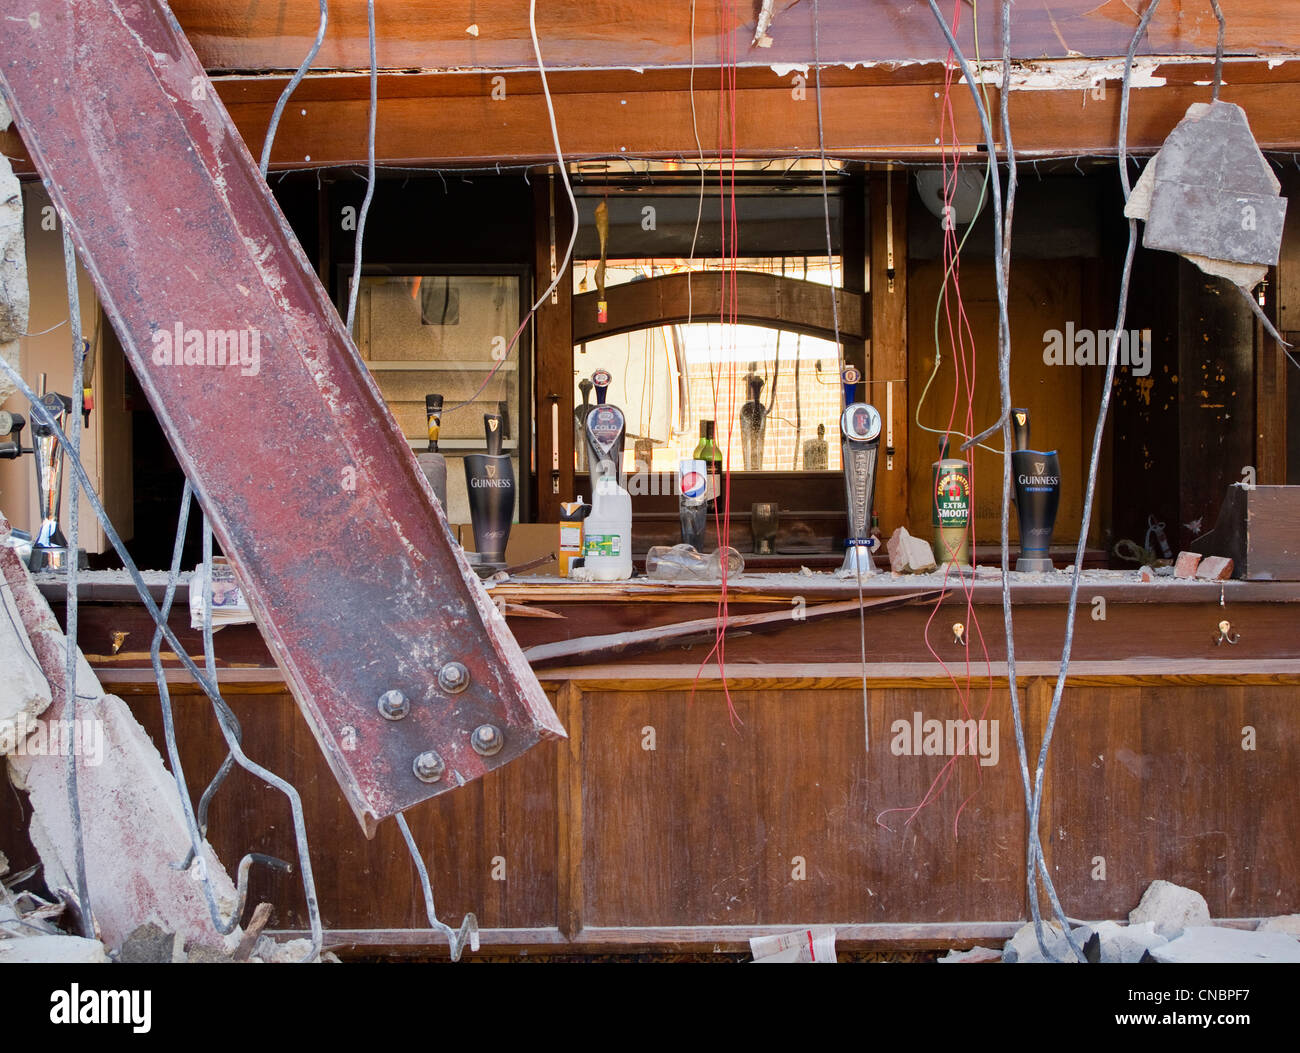 the bar of a pub (public house) that is being demolished - Stock Image